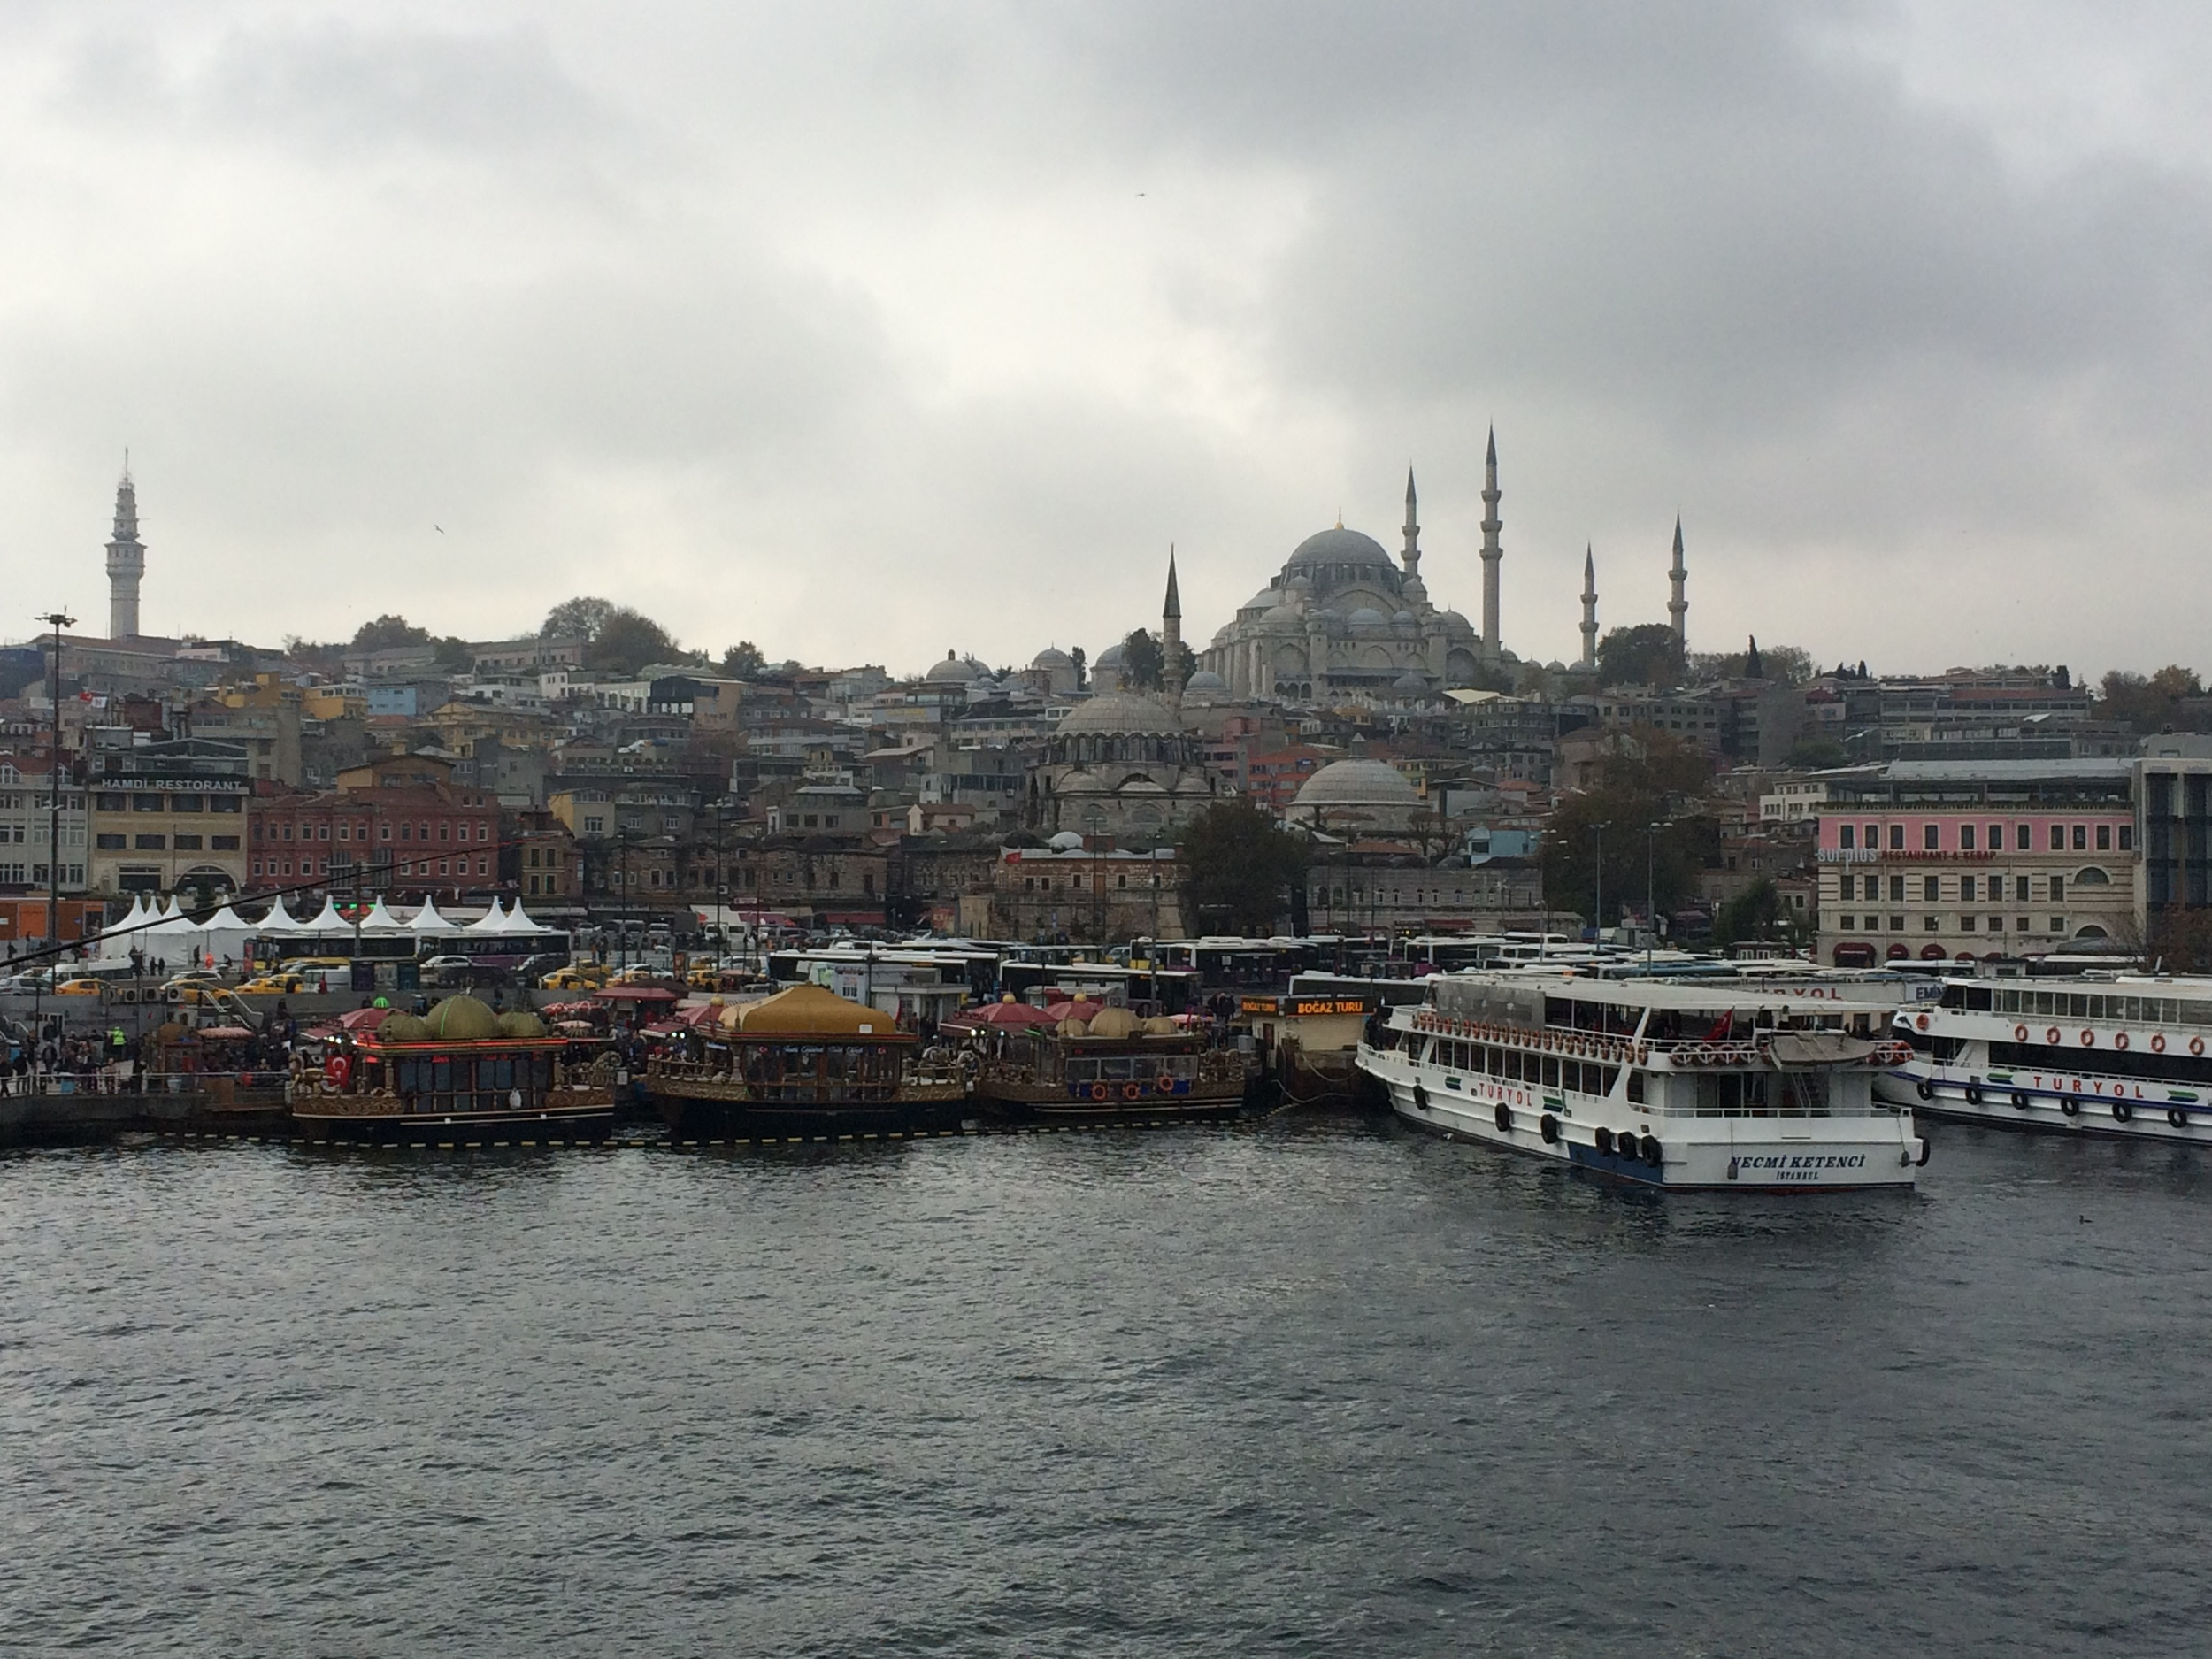 My view from the Galat Bridge in Istanbul, Turkey.